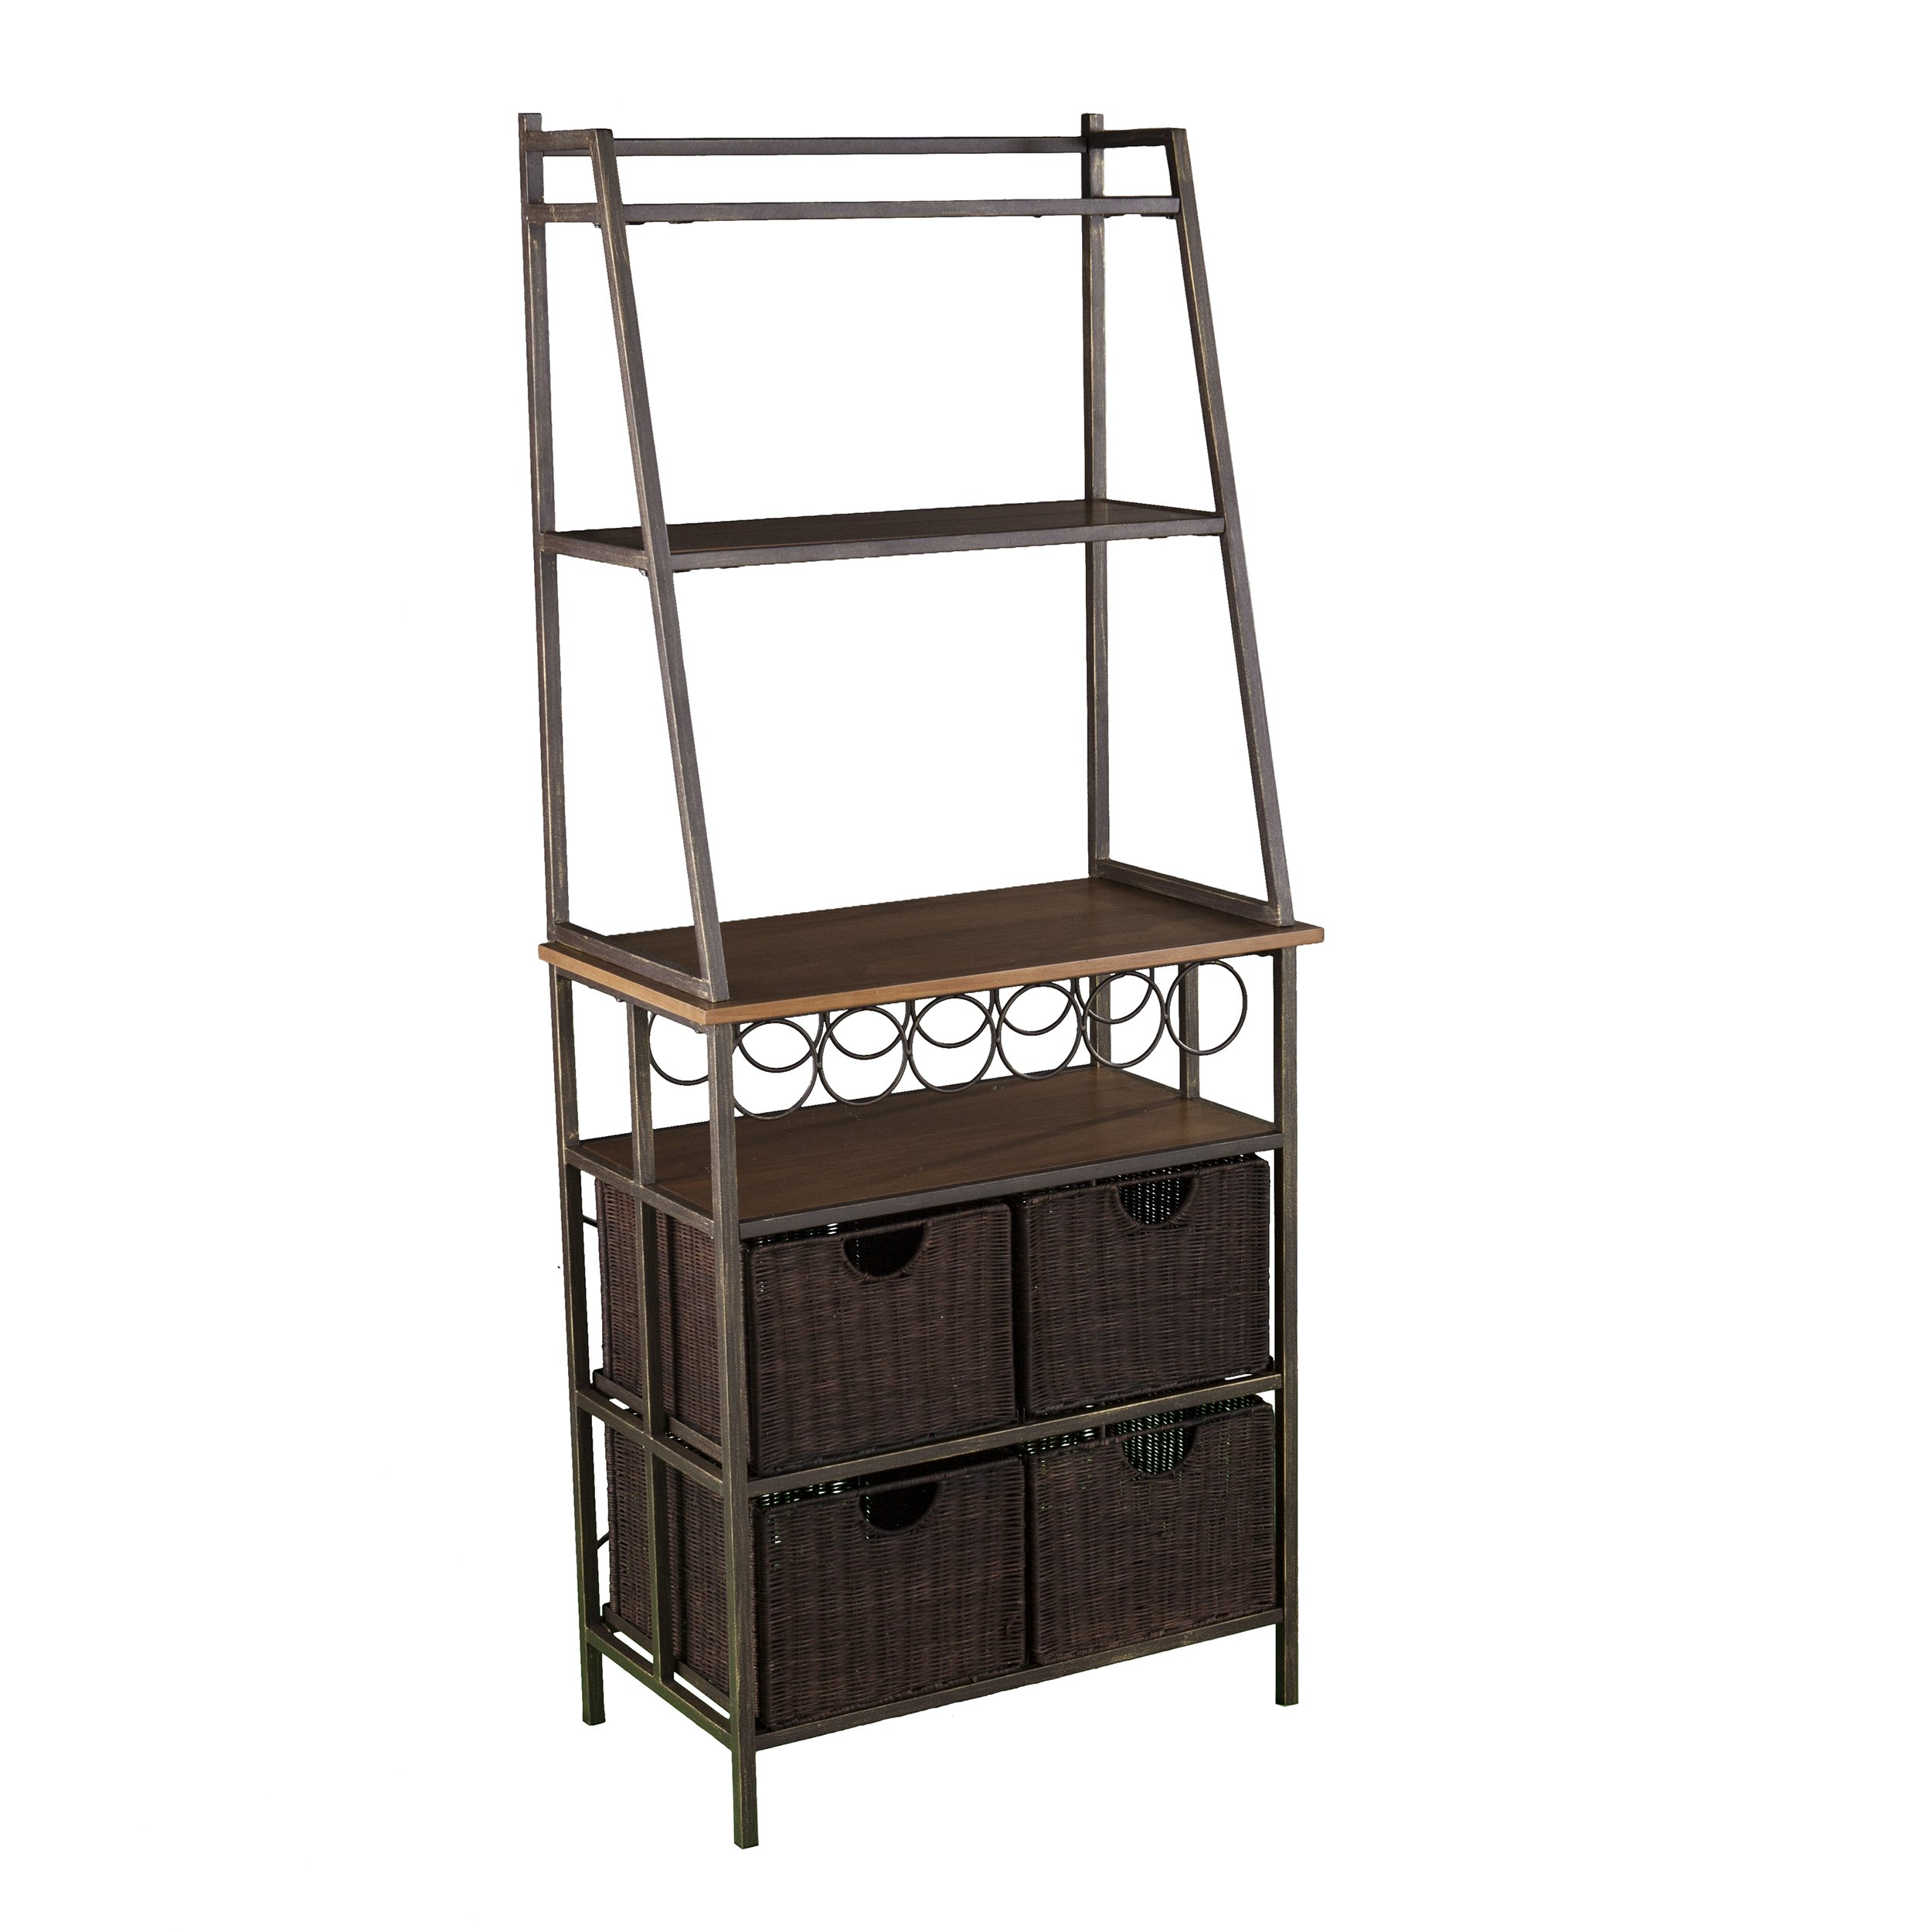 Furniture HotSpot Industrial Bakers Rack with Wine Storage - Microwave Stand w/Shelves & Baskets